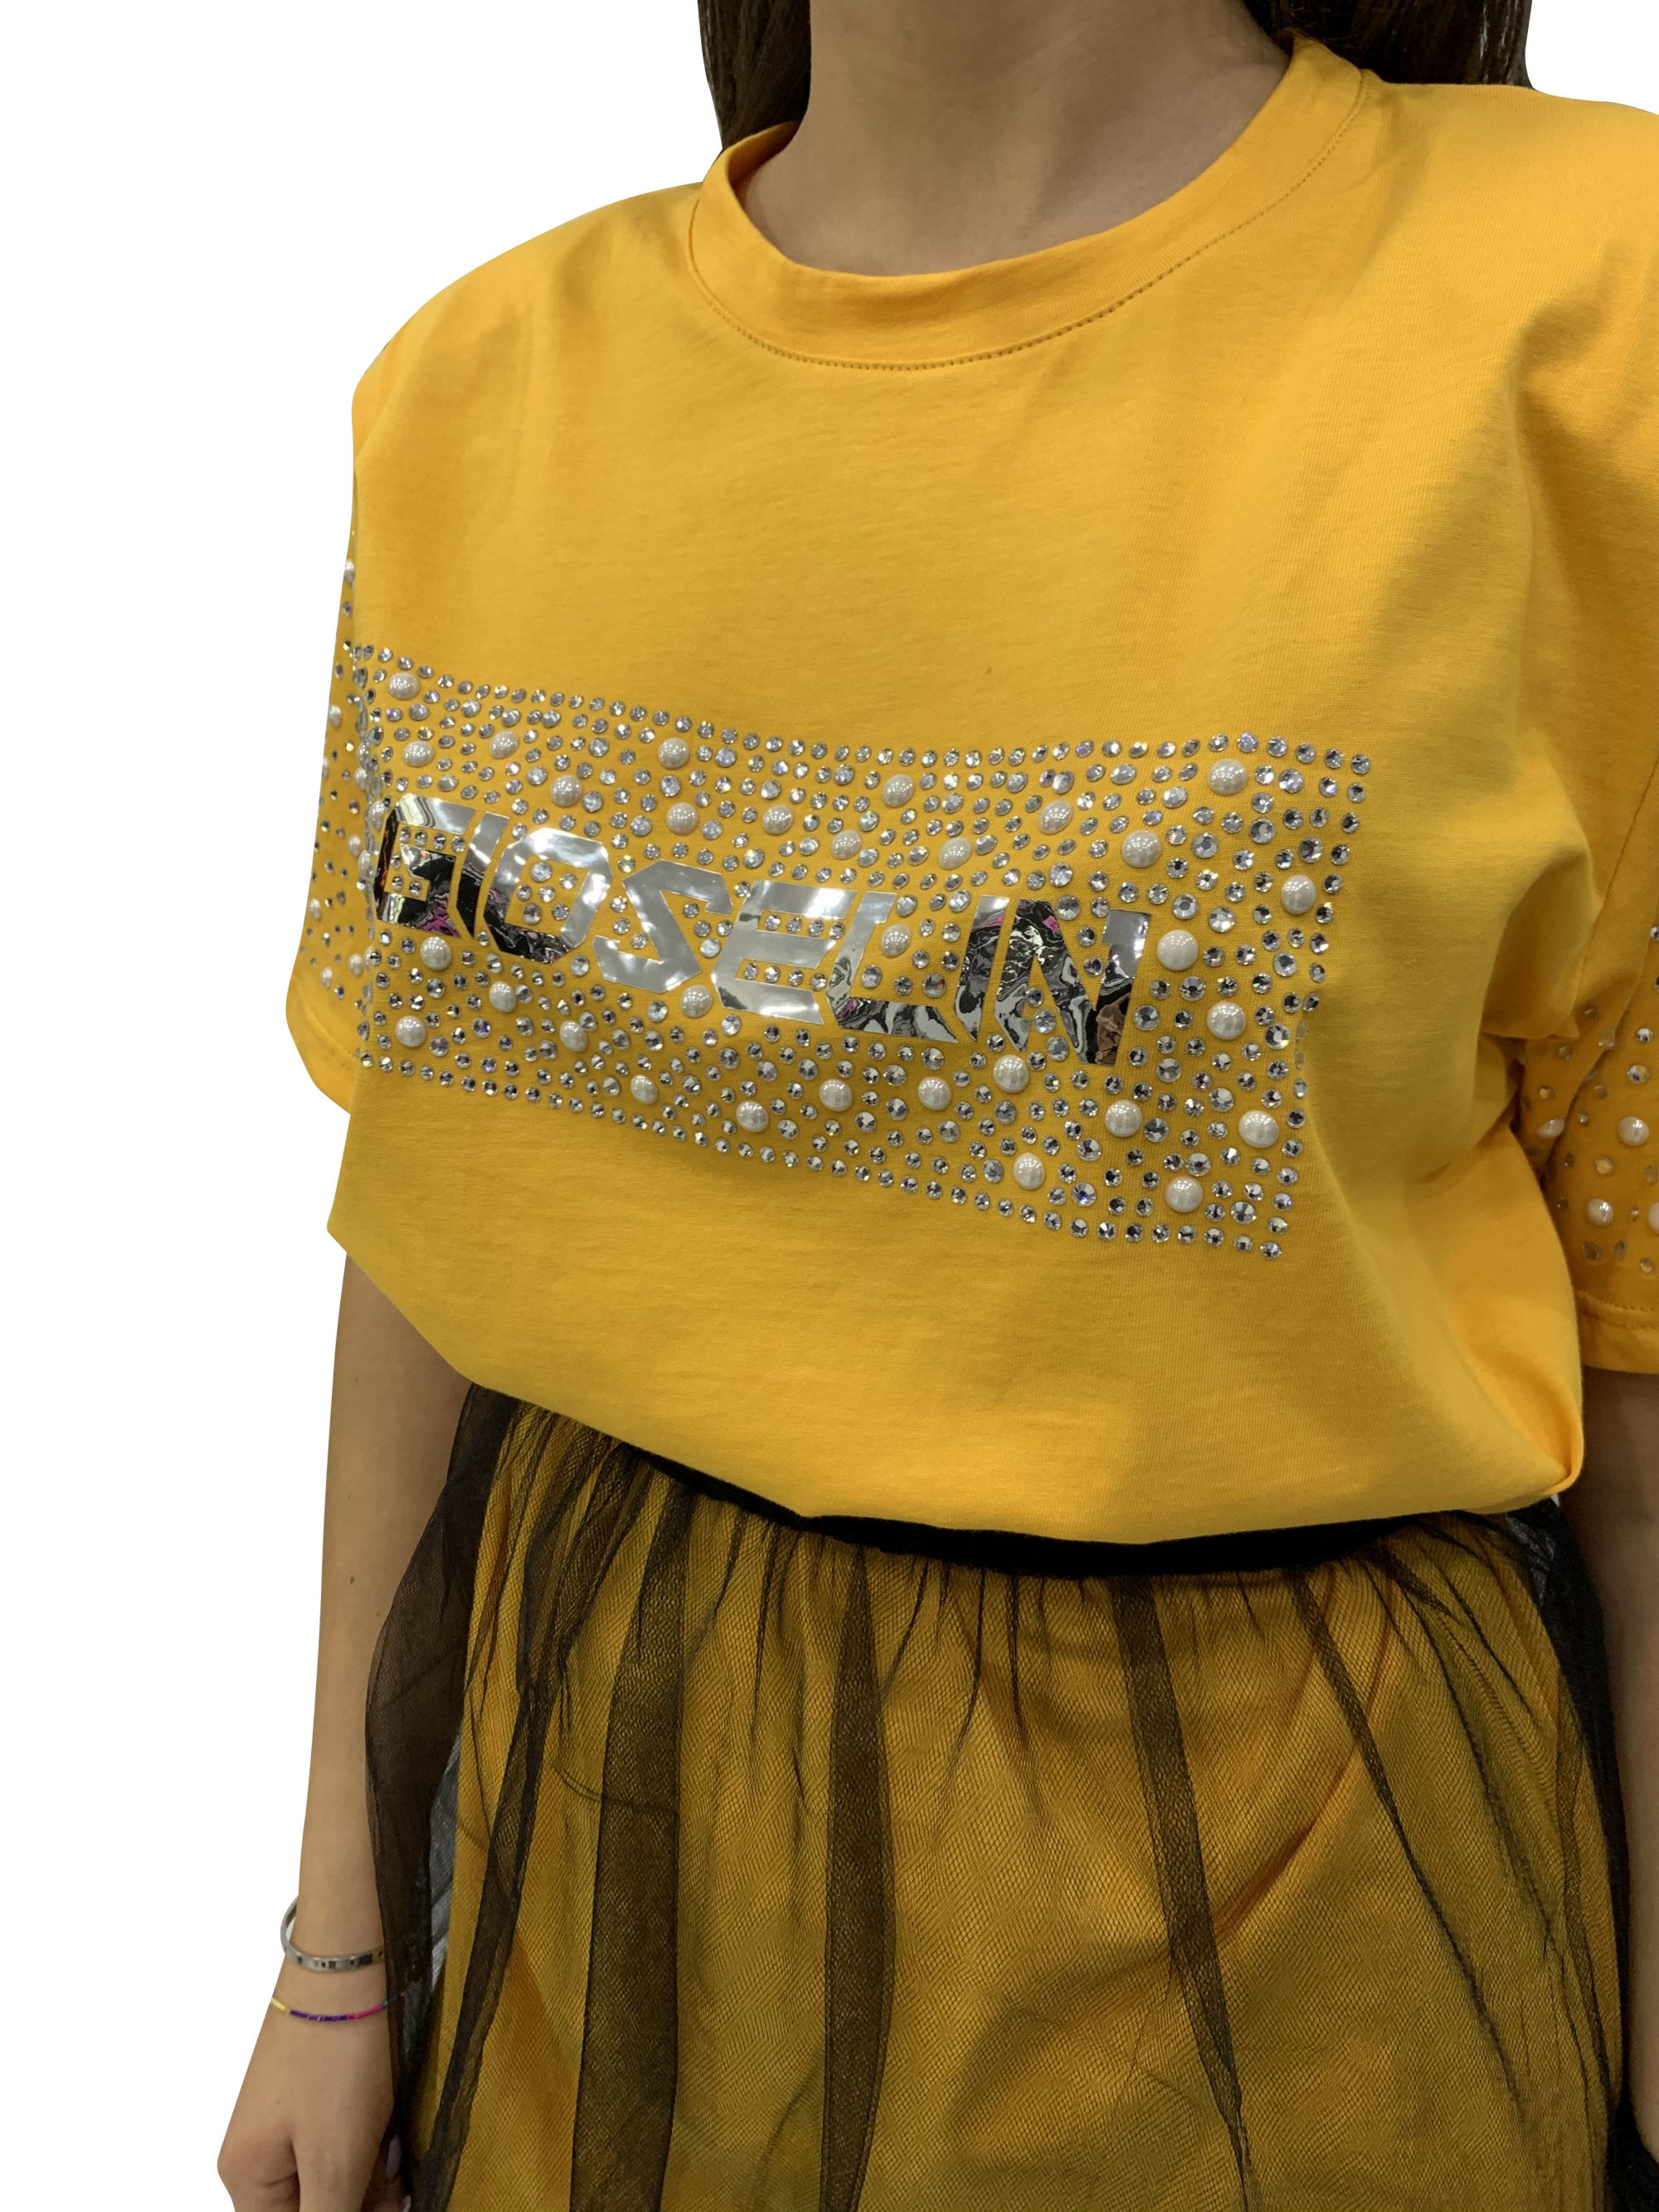 GIOSELIN T-SHIRT PERLE/STRASS+GONNA TULLE SENAPE